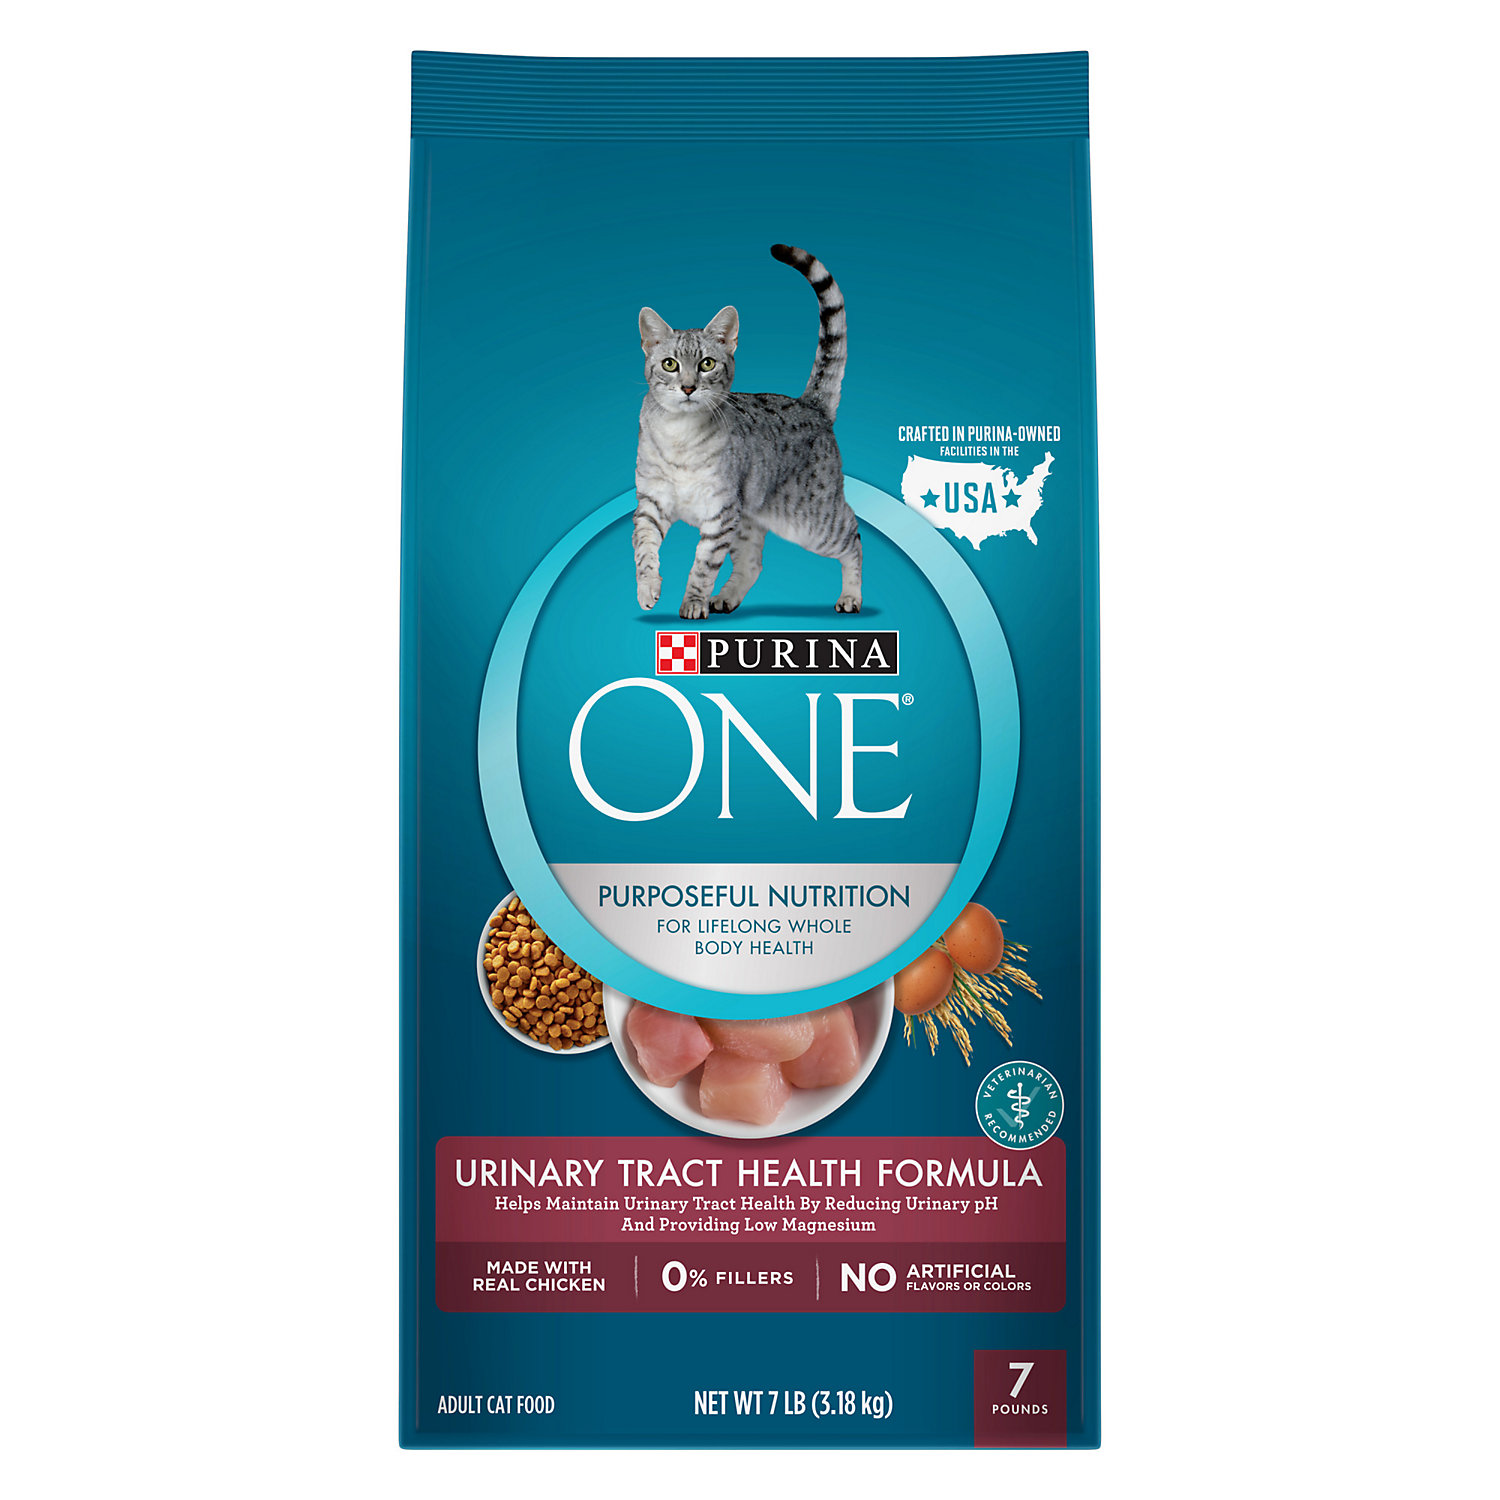 UPC 017800549172 product image for Purina ONE Special Care Urinary Tract Health Formula Cat Food | upcitemdb.com